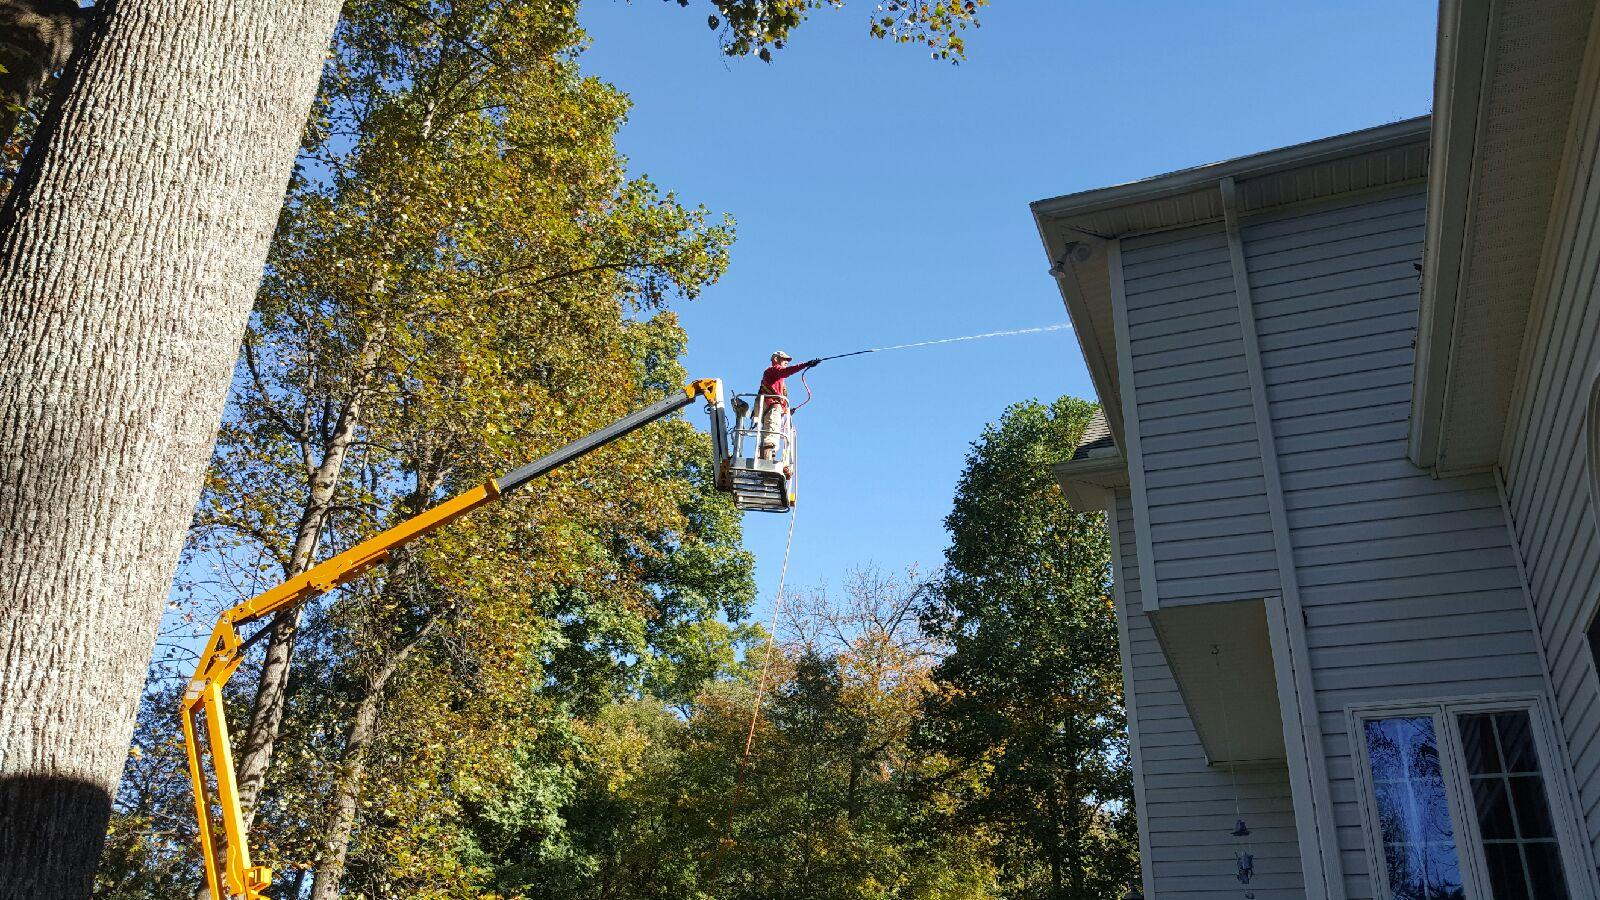 Boom Lift | Deck Cleaning Company in Waynesboro PA